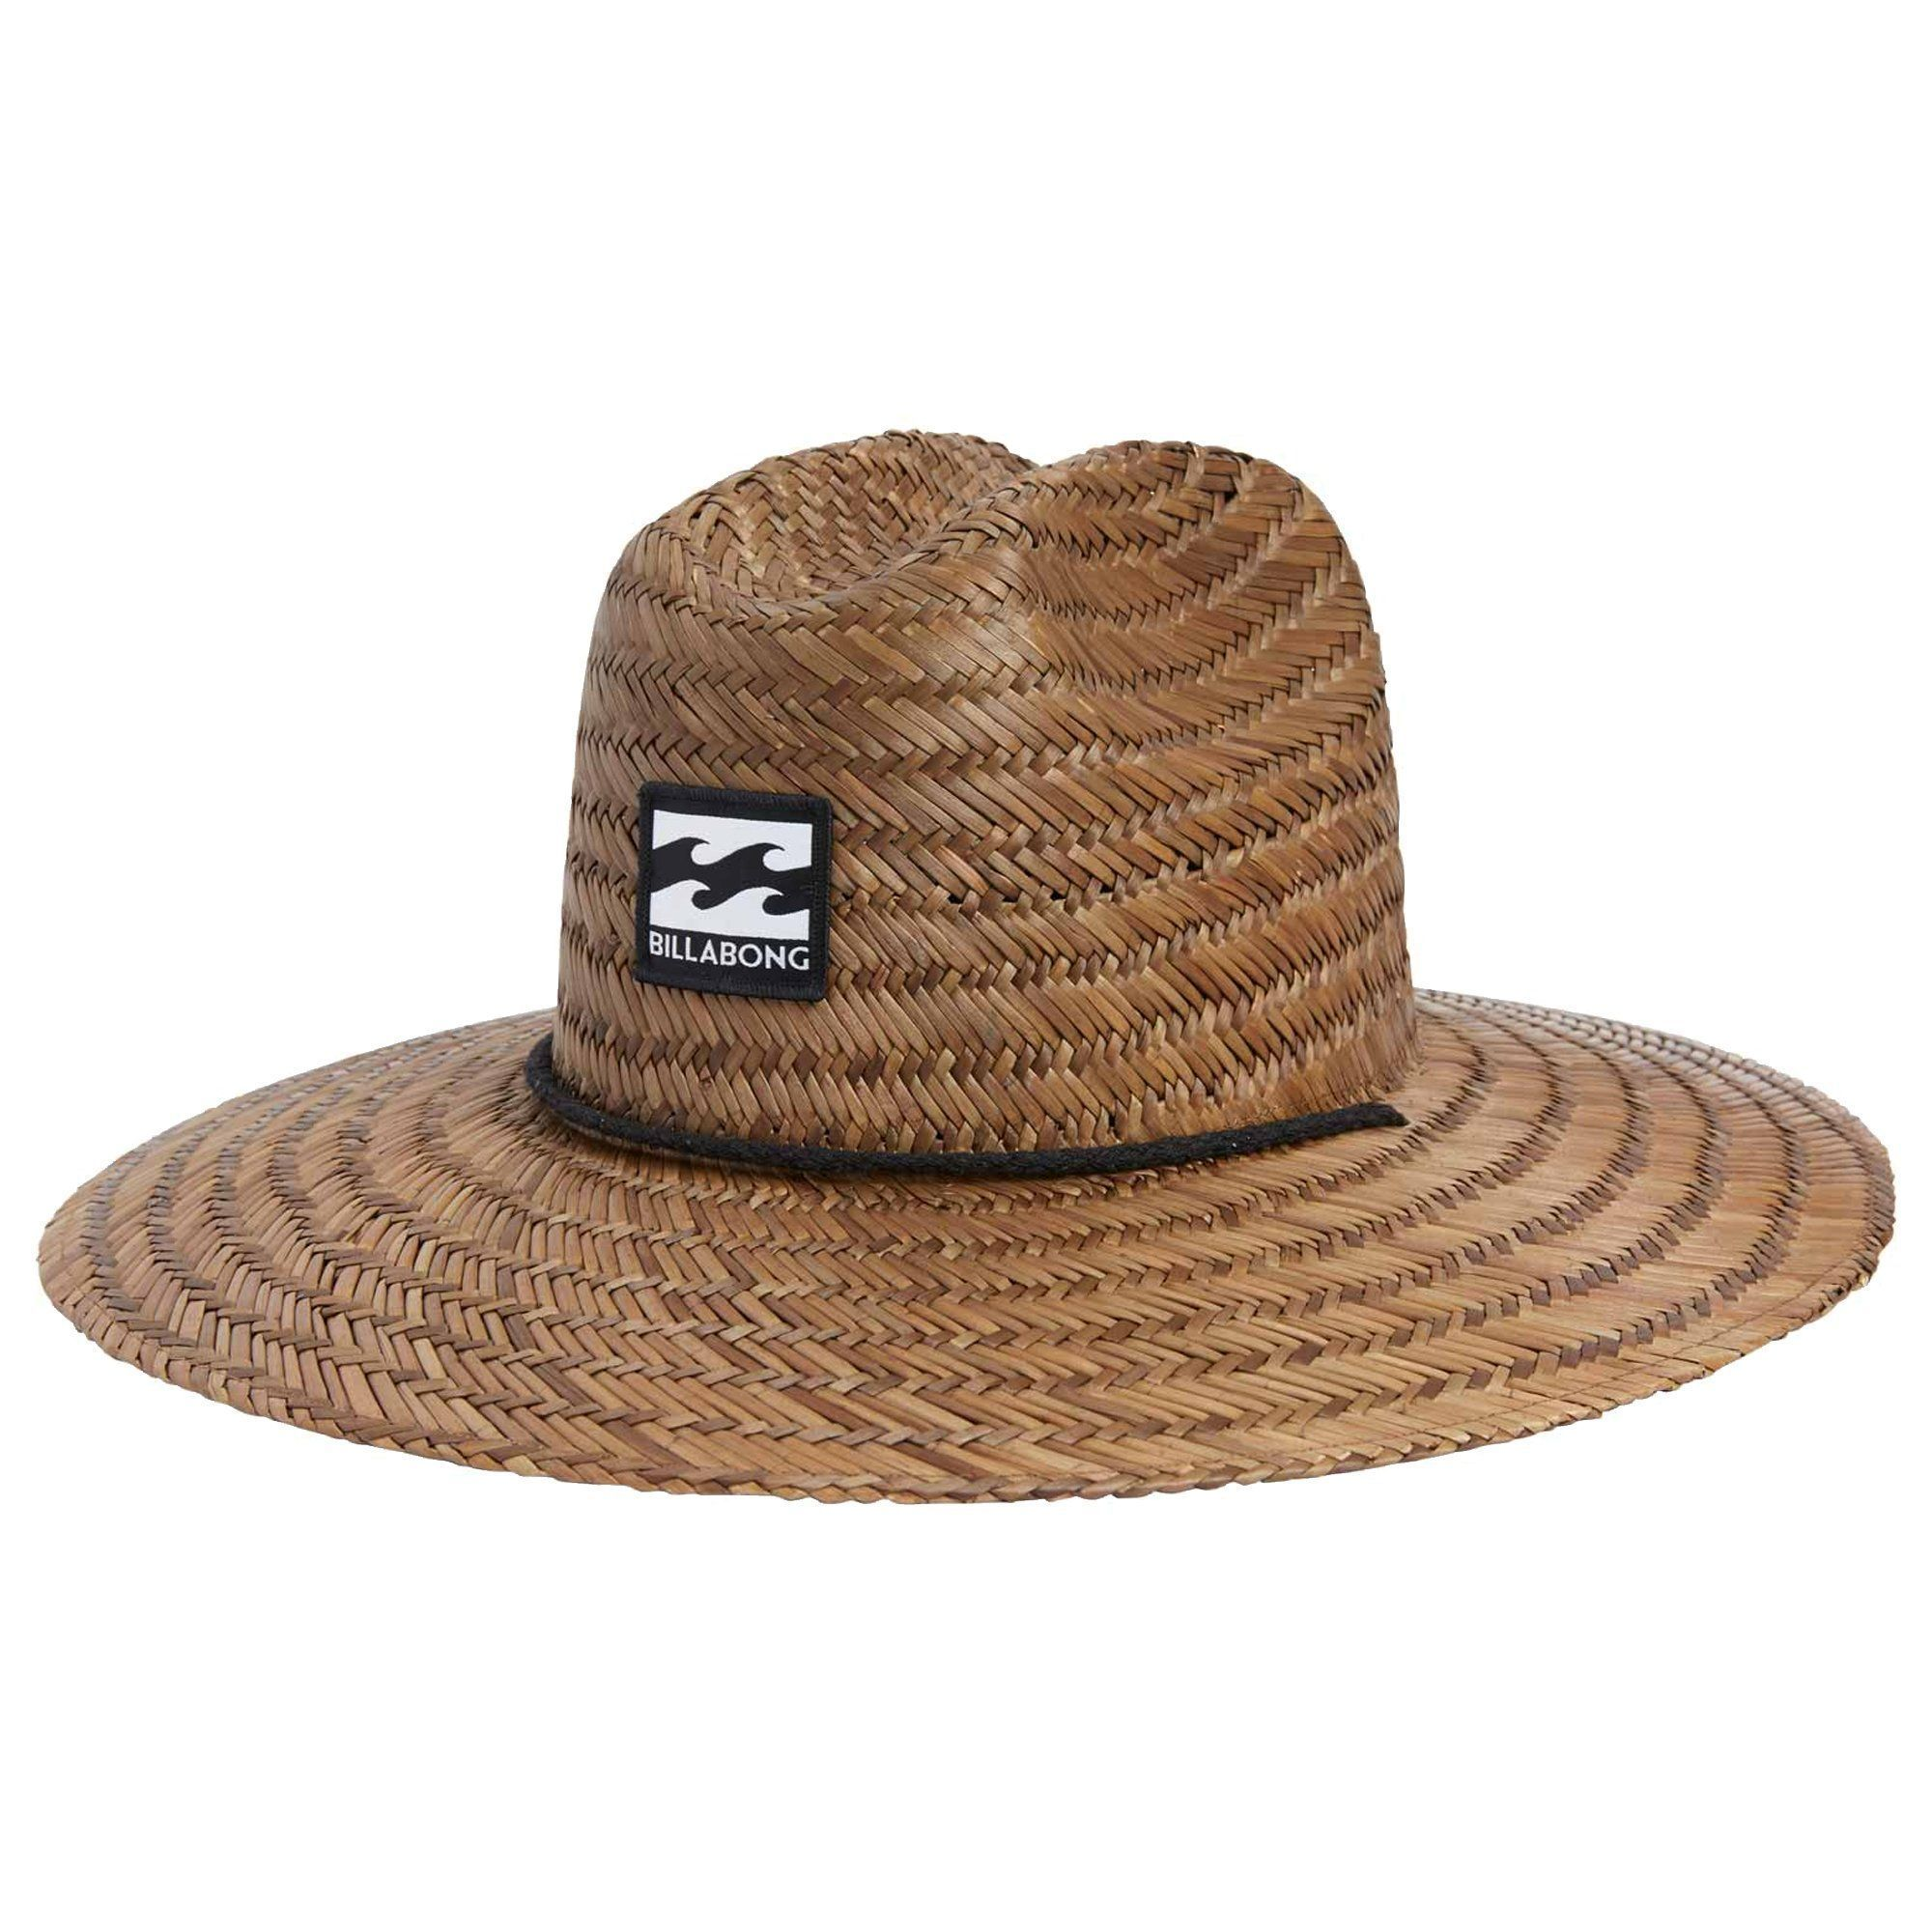 02c84b1f18764 For days when throwing in the towel and heading home just isnt an option.  Get the most out of long beach days with this woven lifeguard hat.